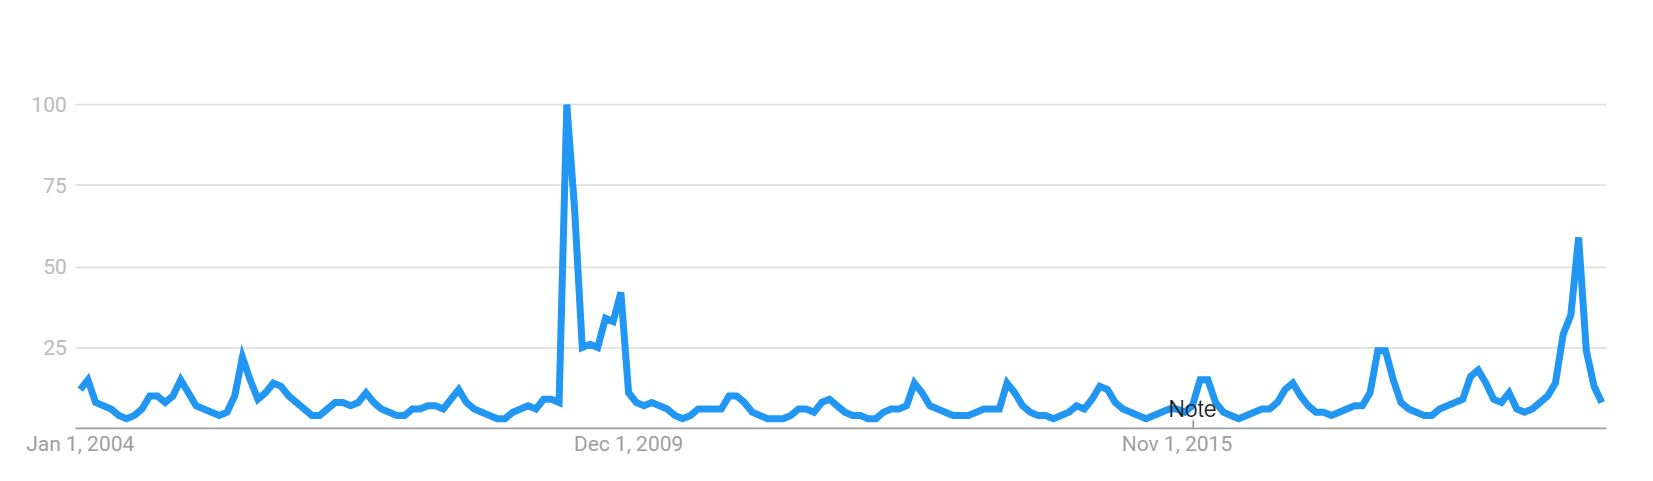 Influenza Google Trends.png